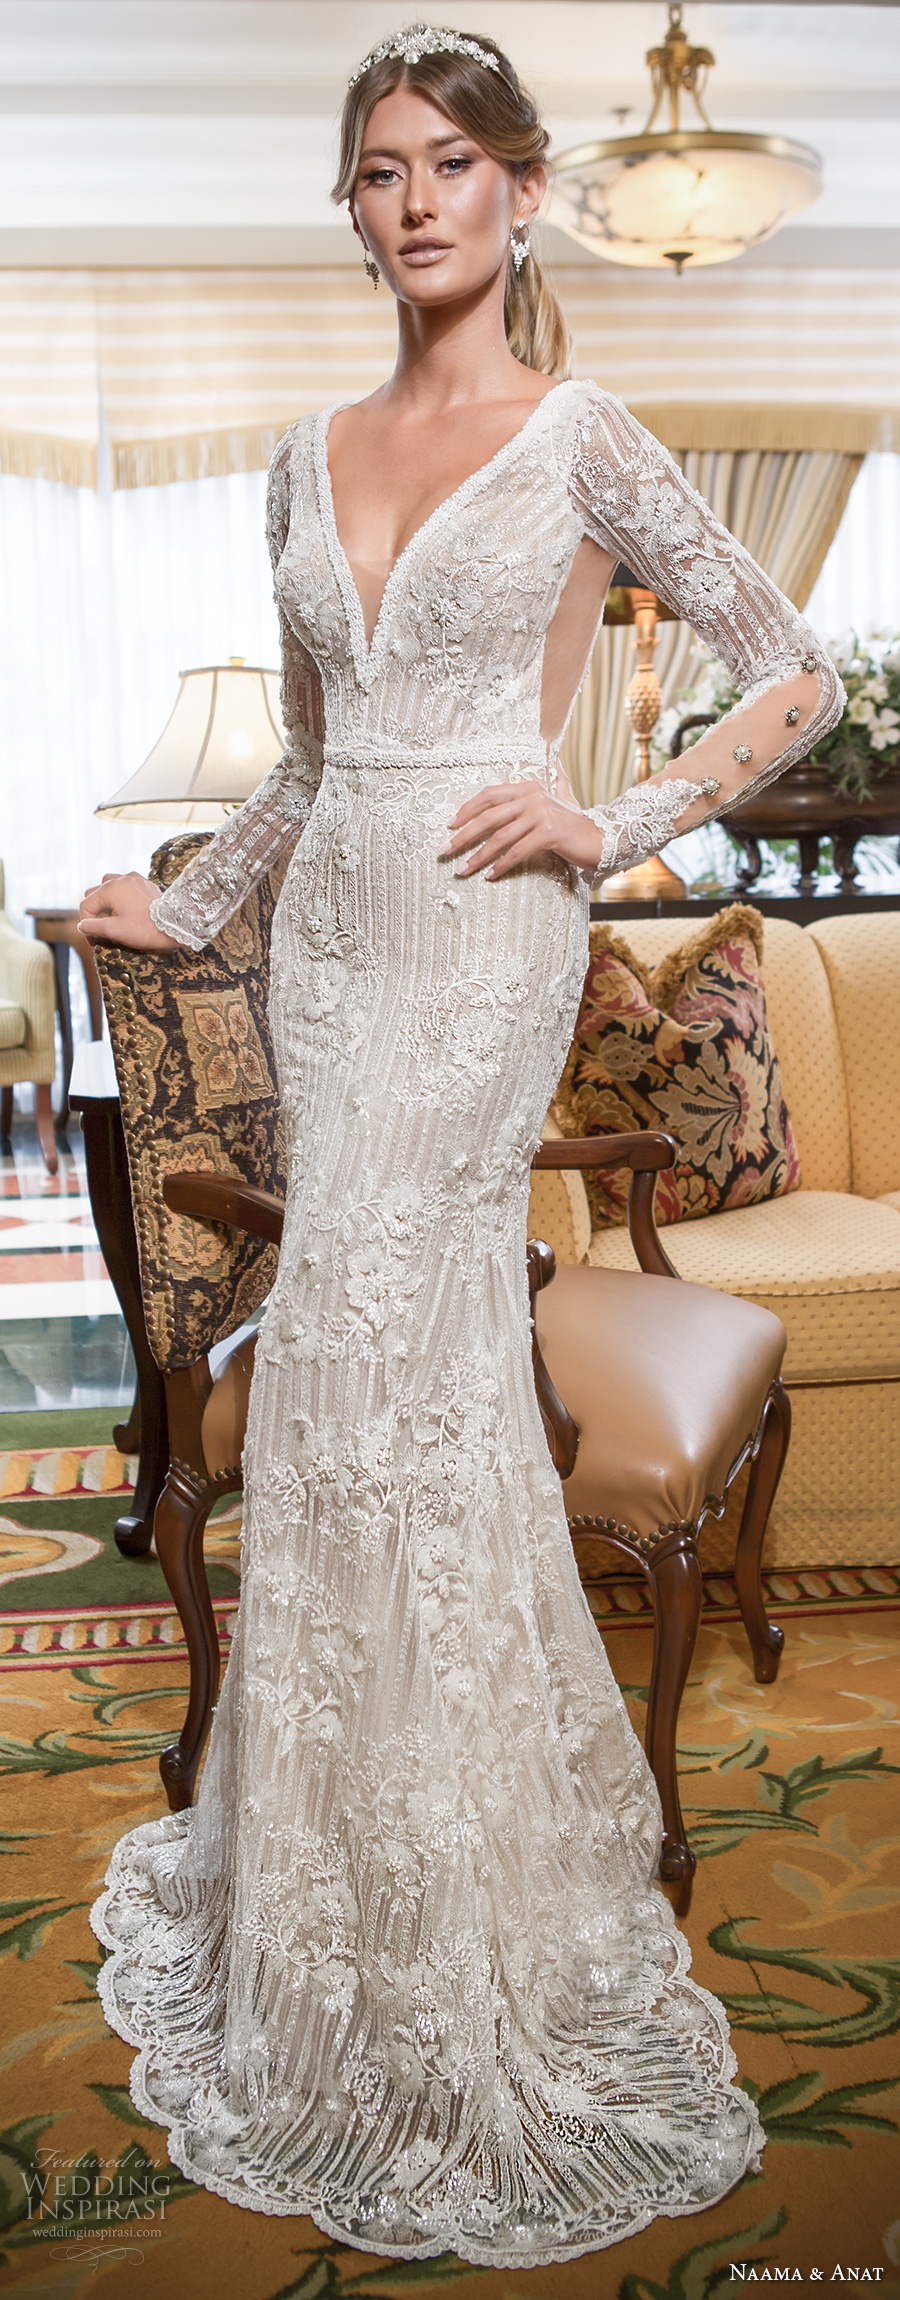 naama and anat 2018 bridal long sleeves deep v neckline full embellishment elegant fit and flare wedding dress open low v back sweep train (amore) mv